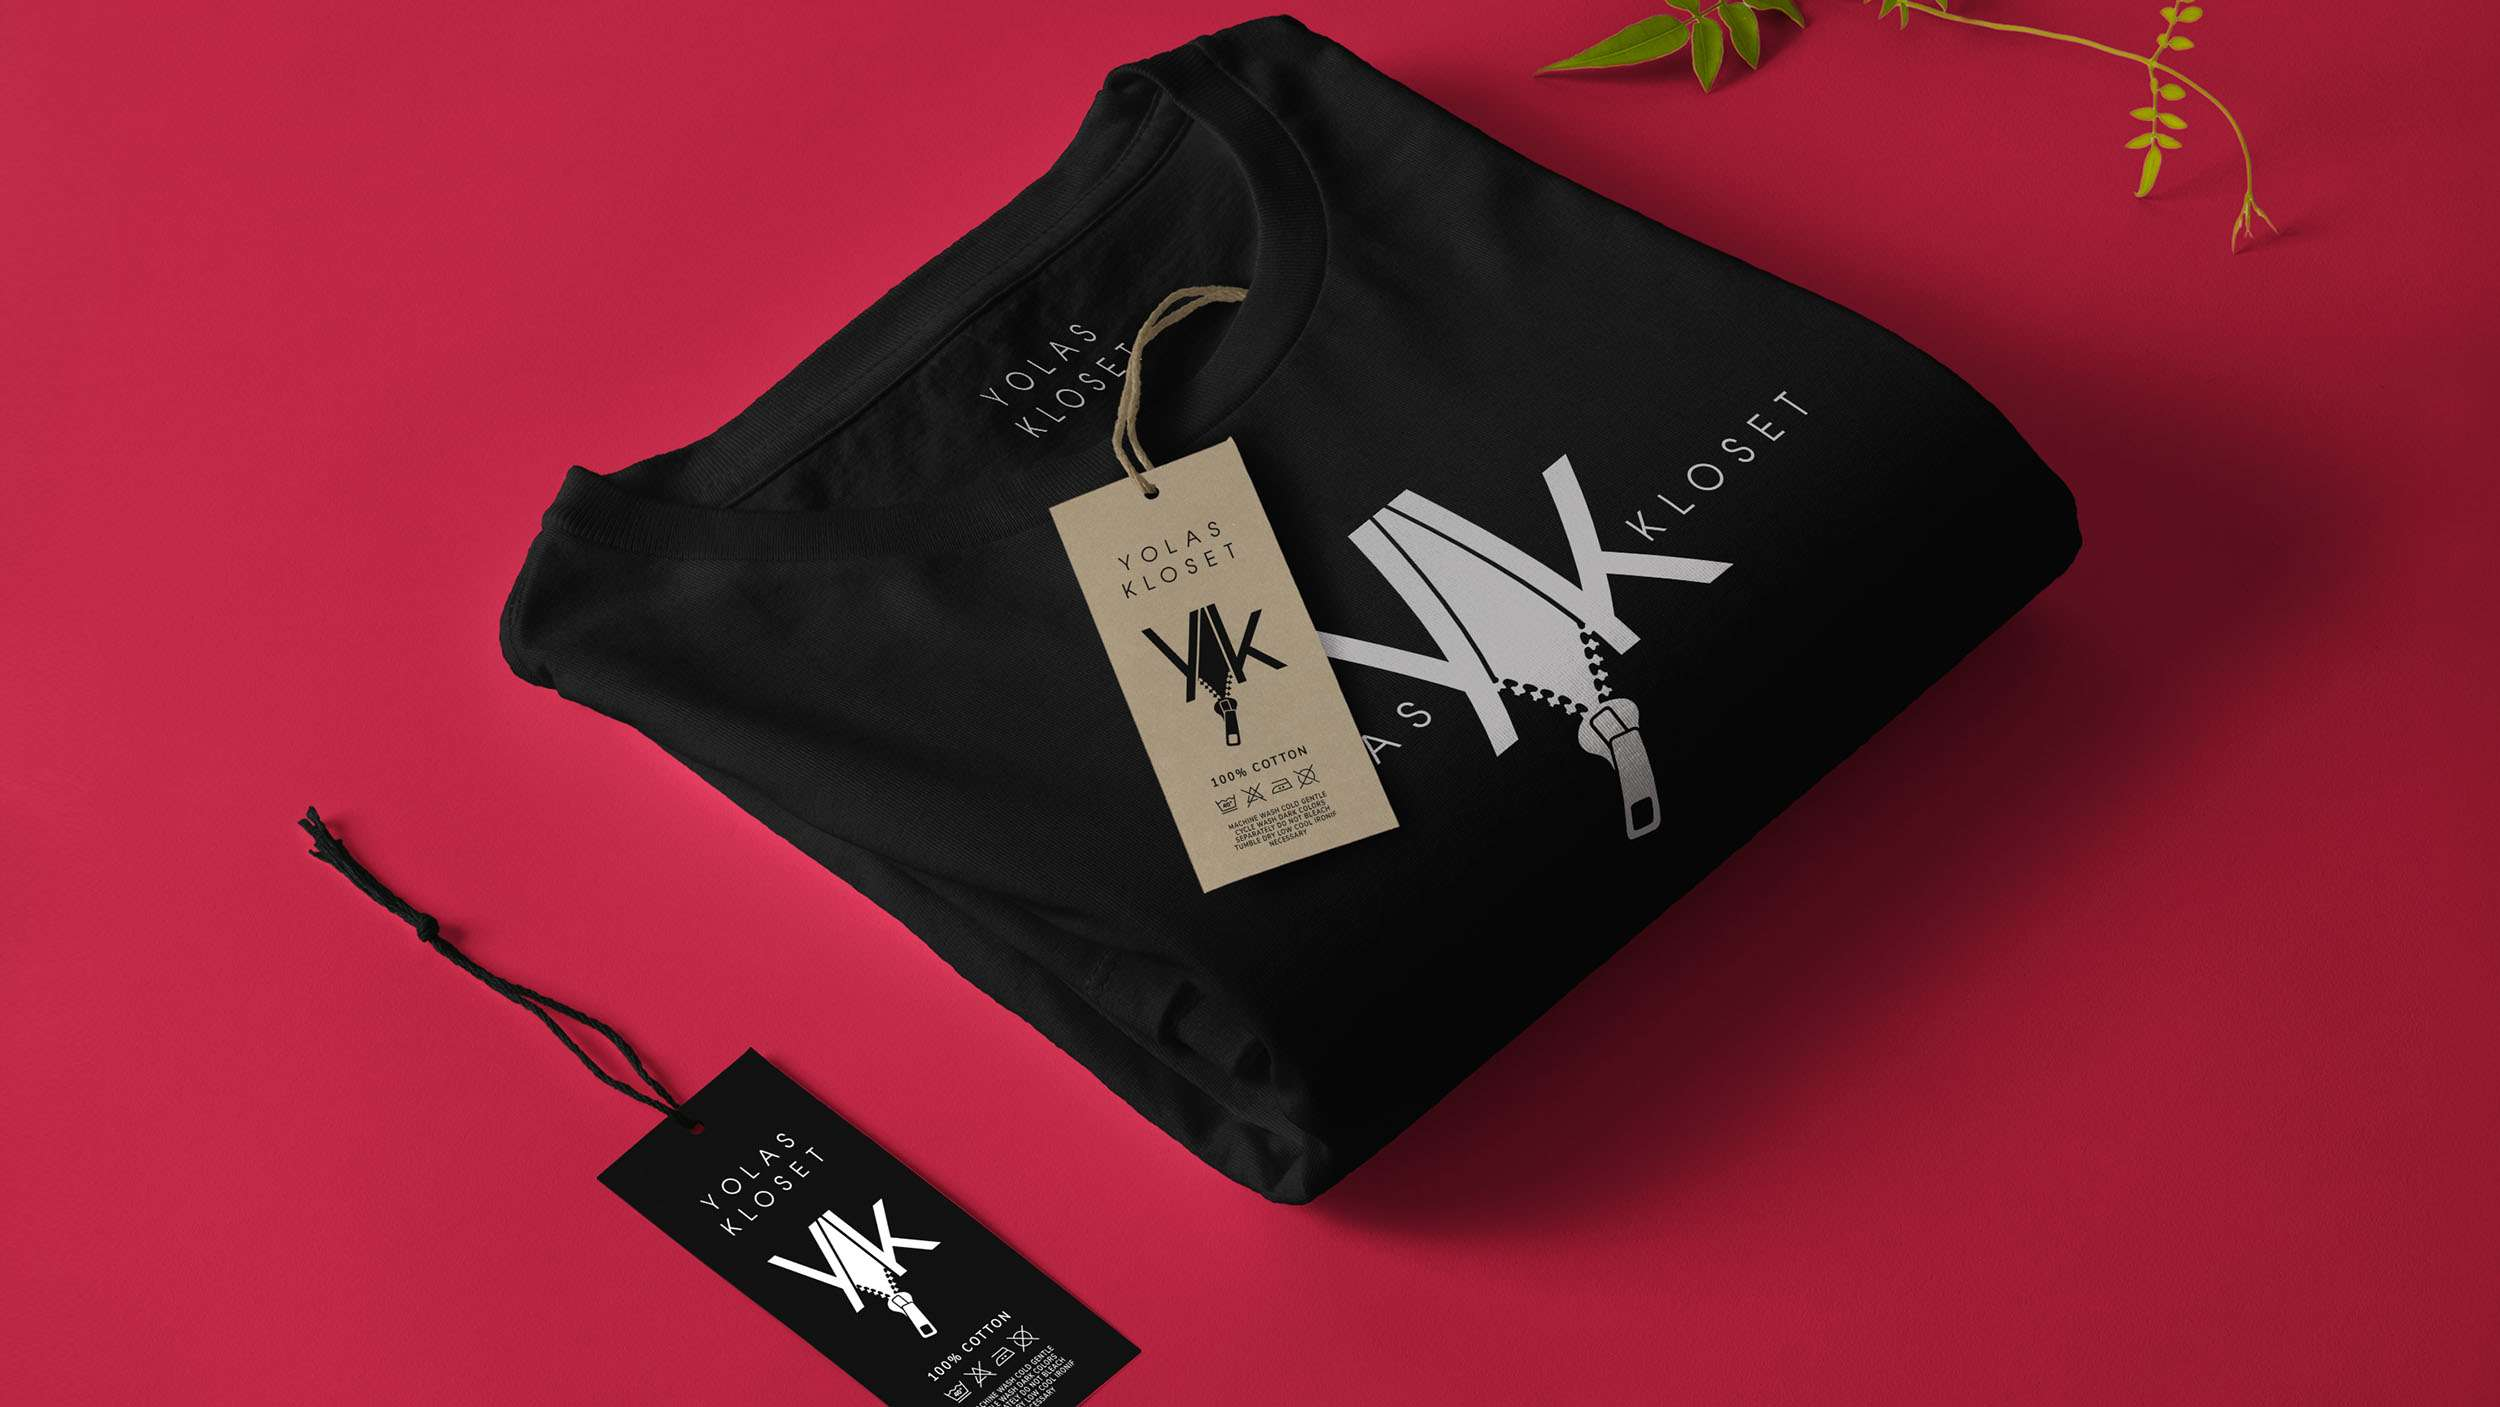 Clothing brand graphics on black t-shirt for Yolas Kloset.